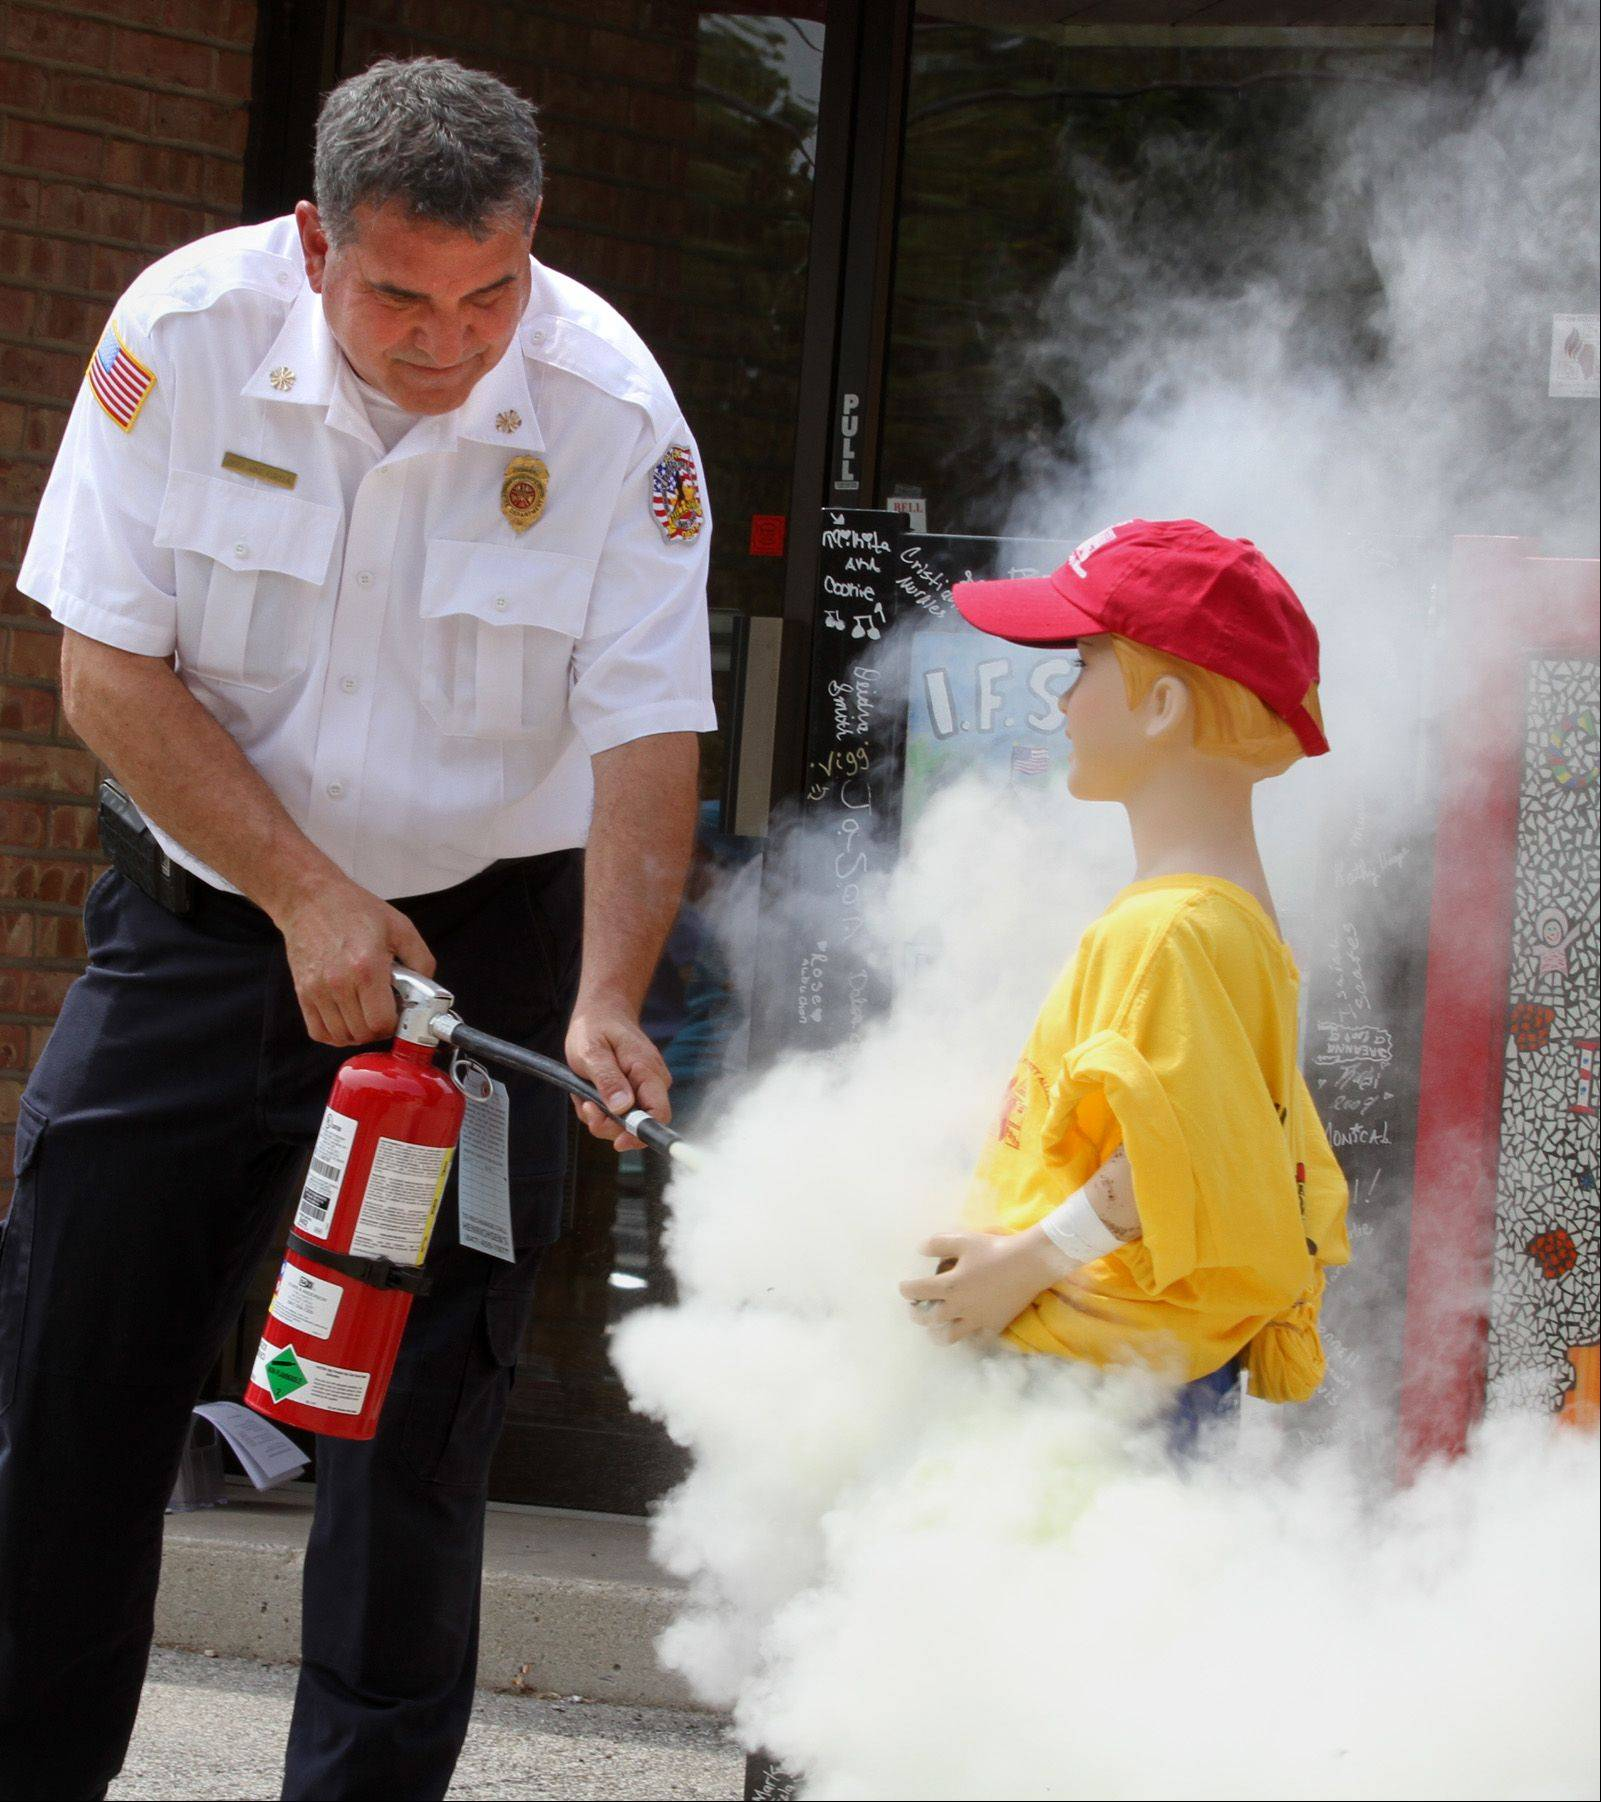 Hillside Fire Chief Michael Kuryla extinguishes a child-sized mannequin that was set ablaze Tuesday by a sparkler at a fireworks safety event sponsored by the Illinois Fire Safety Alliance to highlight the dangers of fireworks.